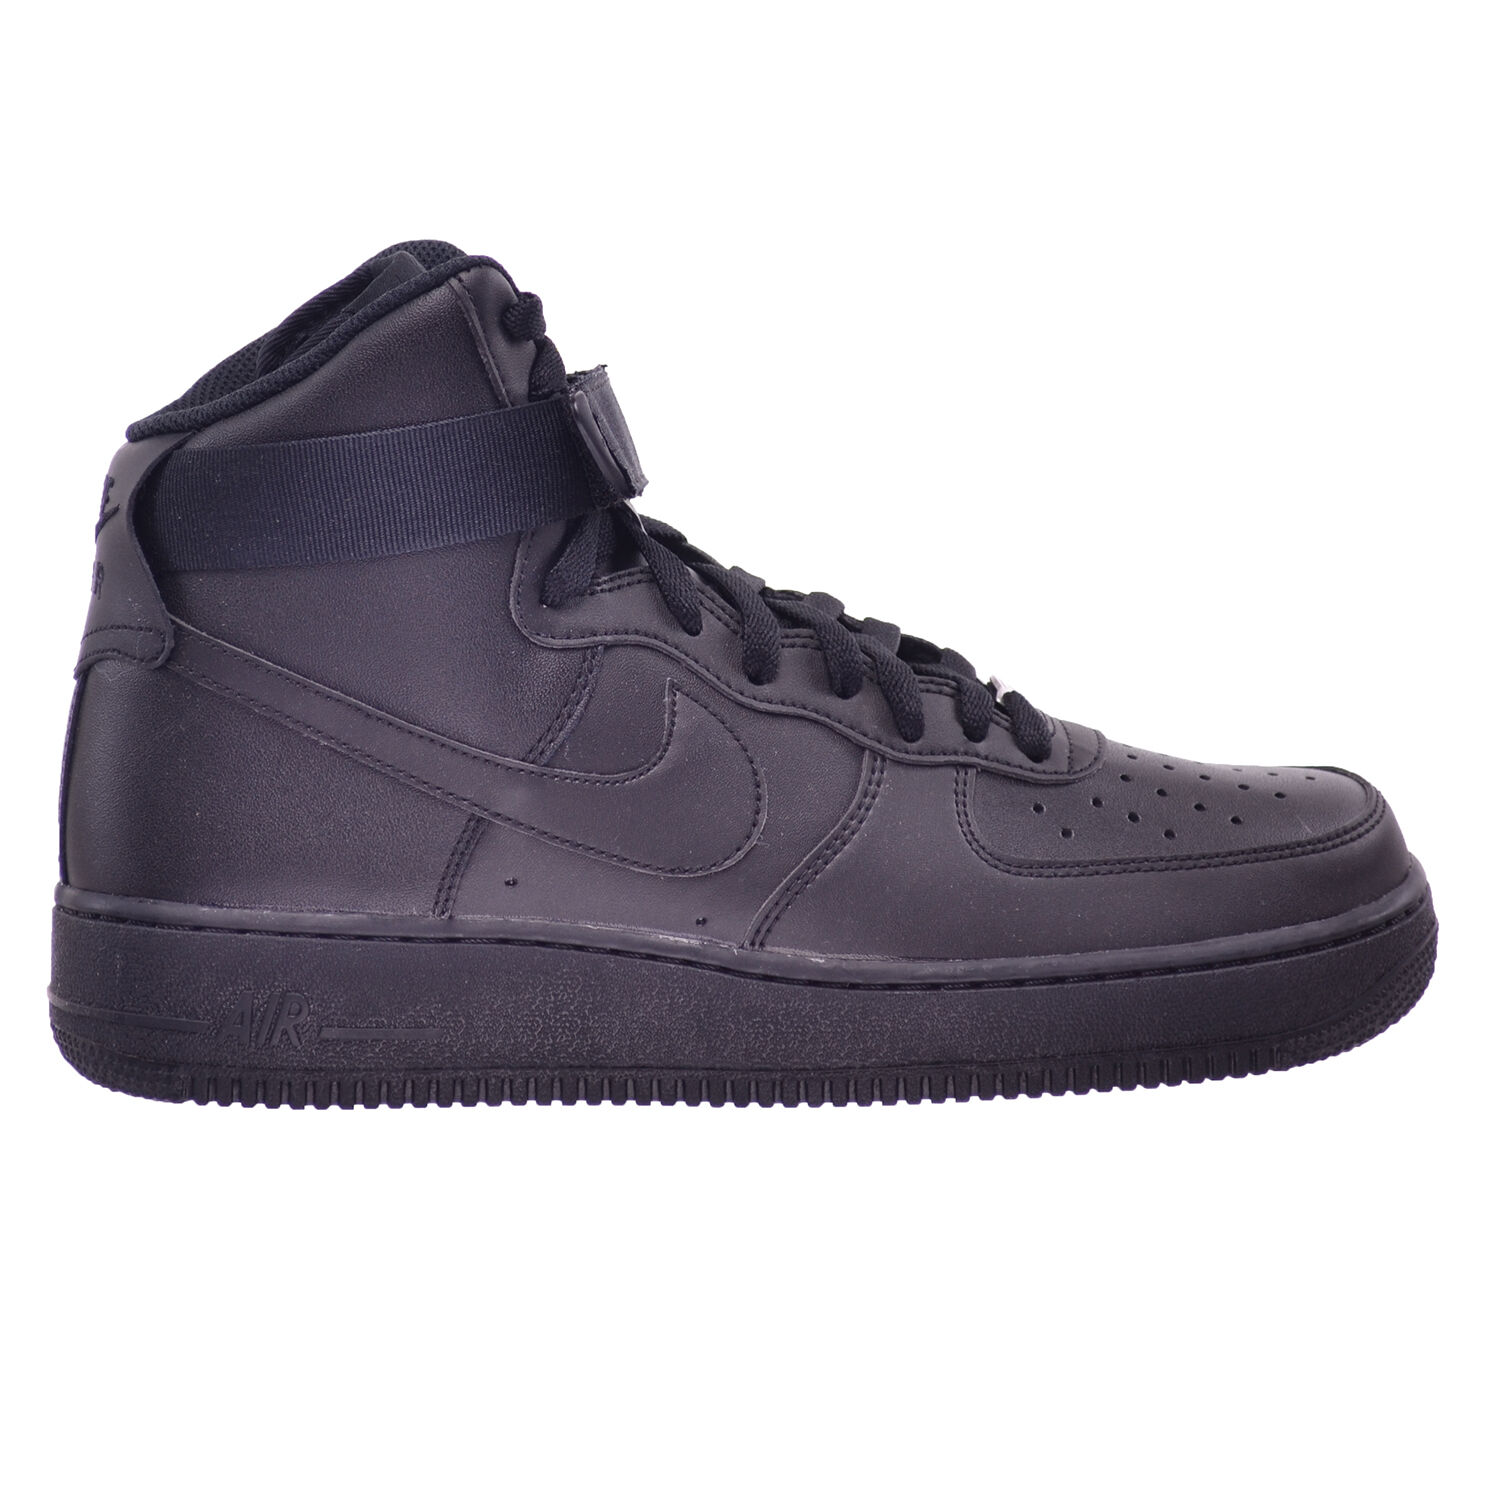 Nike Air Force 1 High '07 Men's Shoes Black 315121-032